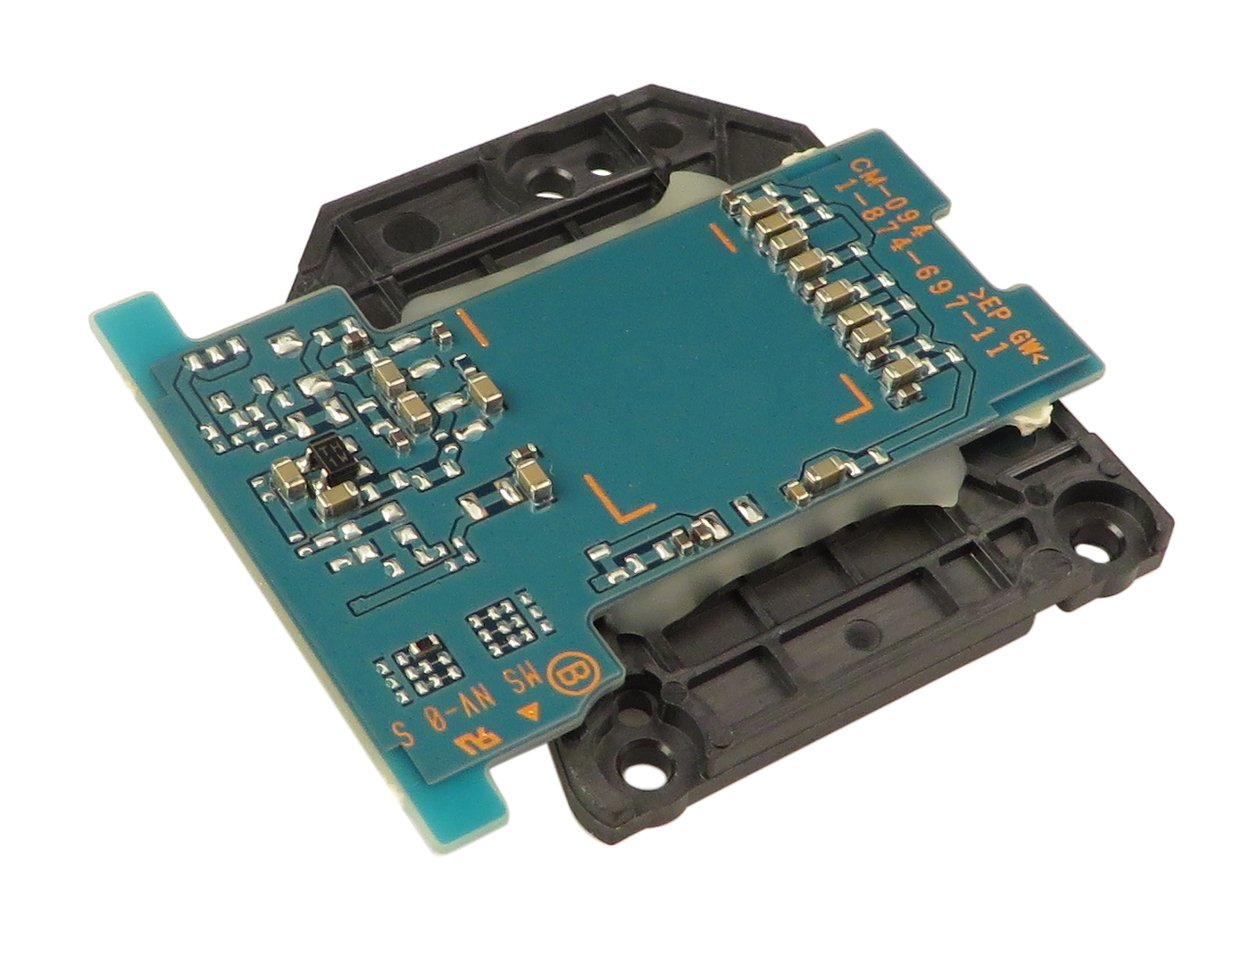 CMOS Block Assembly for HDR-SR11, HDR-SR12, and HDR-CX12